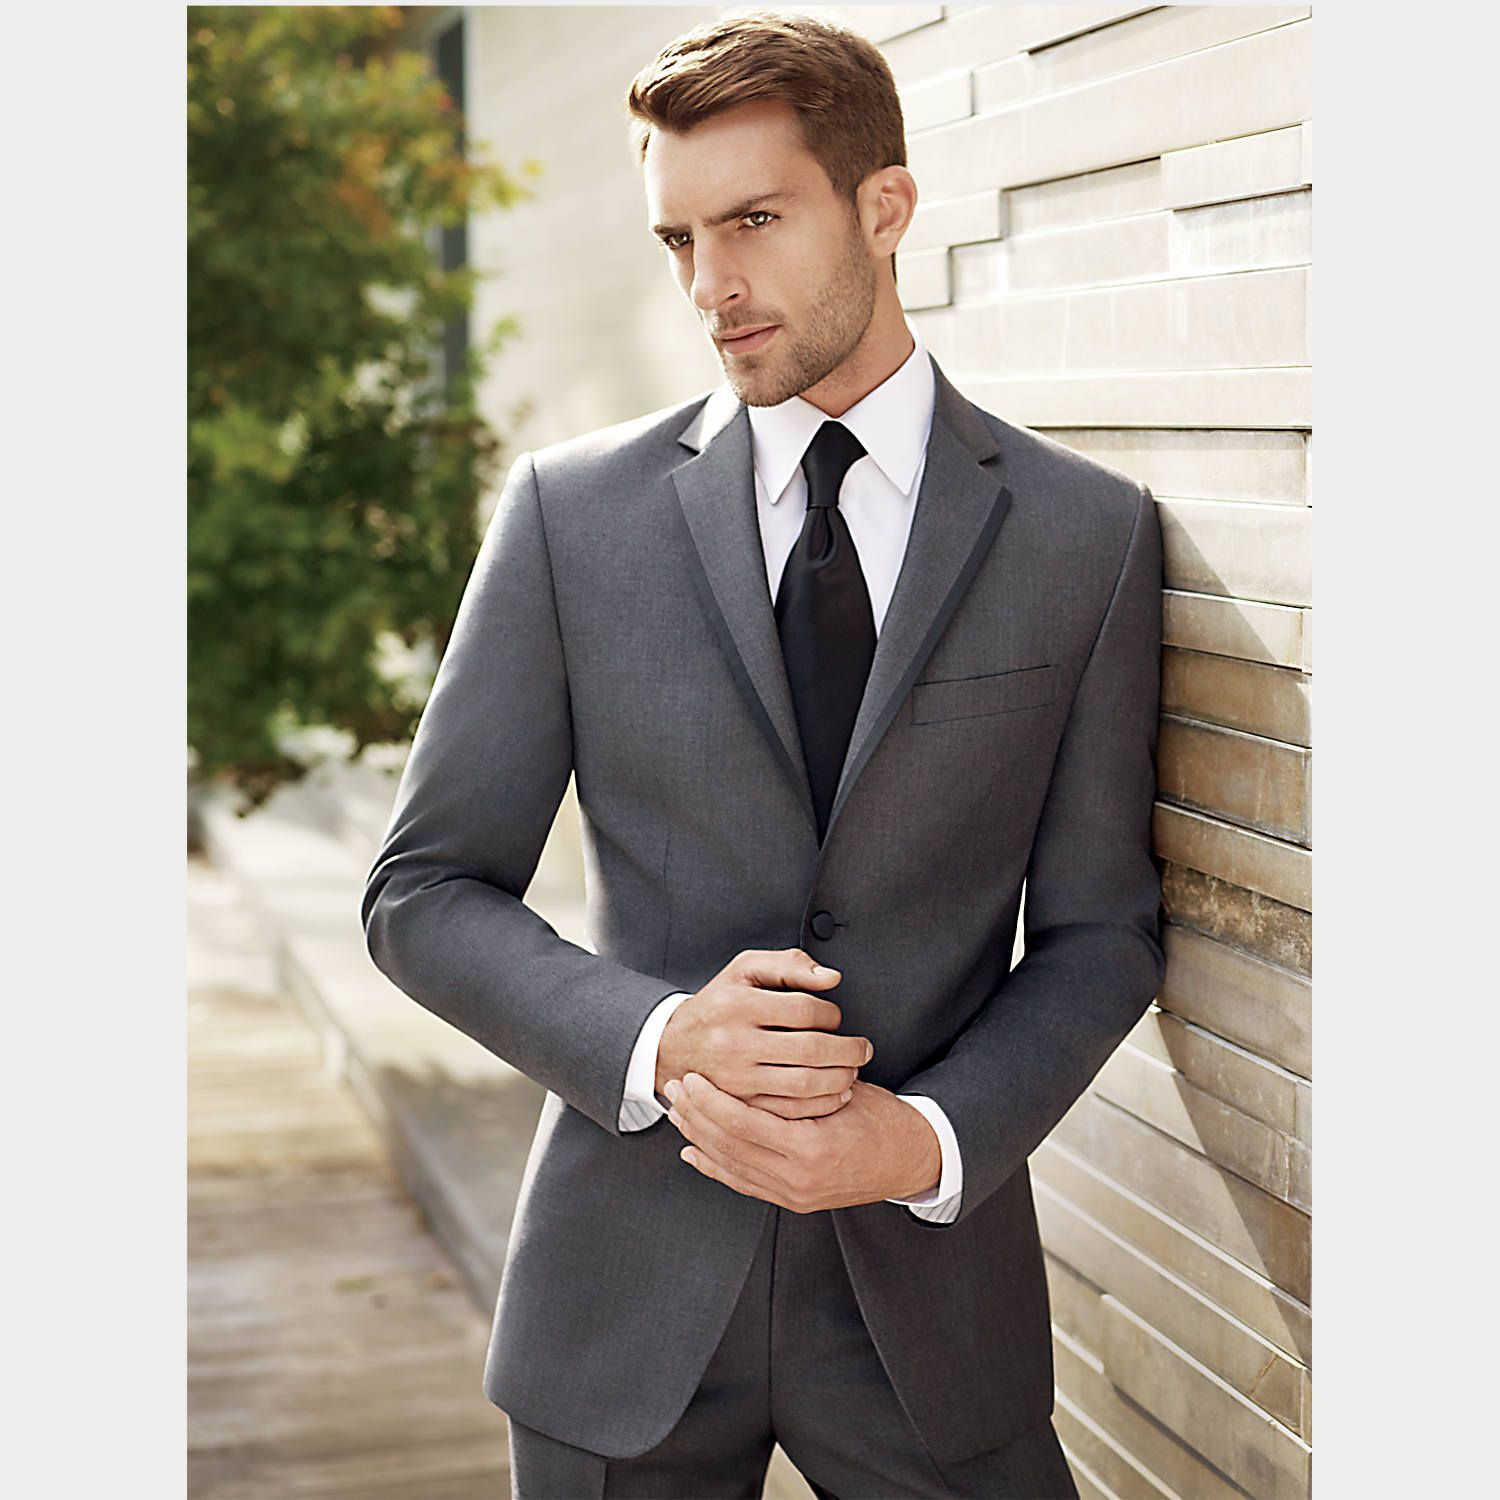 0a8e6010433 Tuxedo Adam and groomsmen will be wearing. It will also have the vest. BLACK  by Vera Wang Gray Slim Fit Tuxedo - Tuxedos | Men's Wearhouse